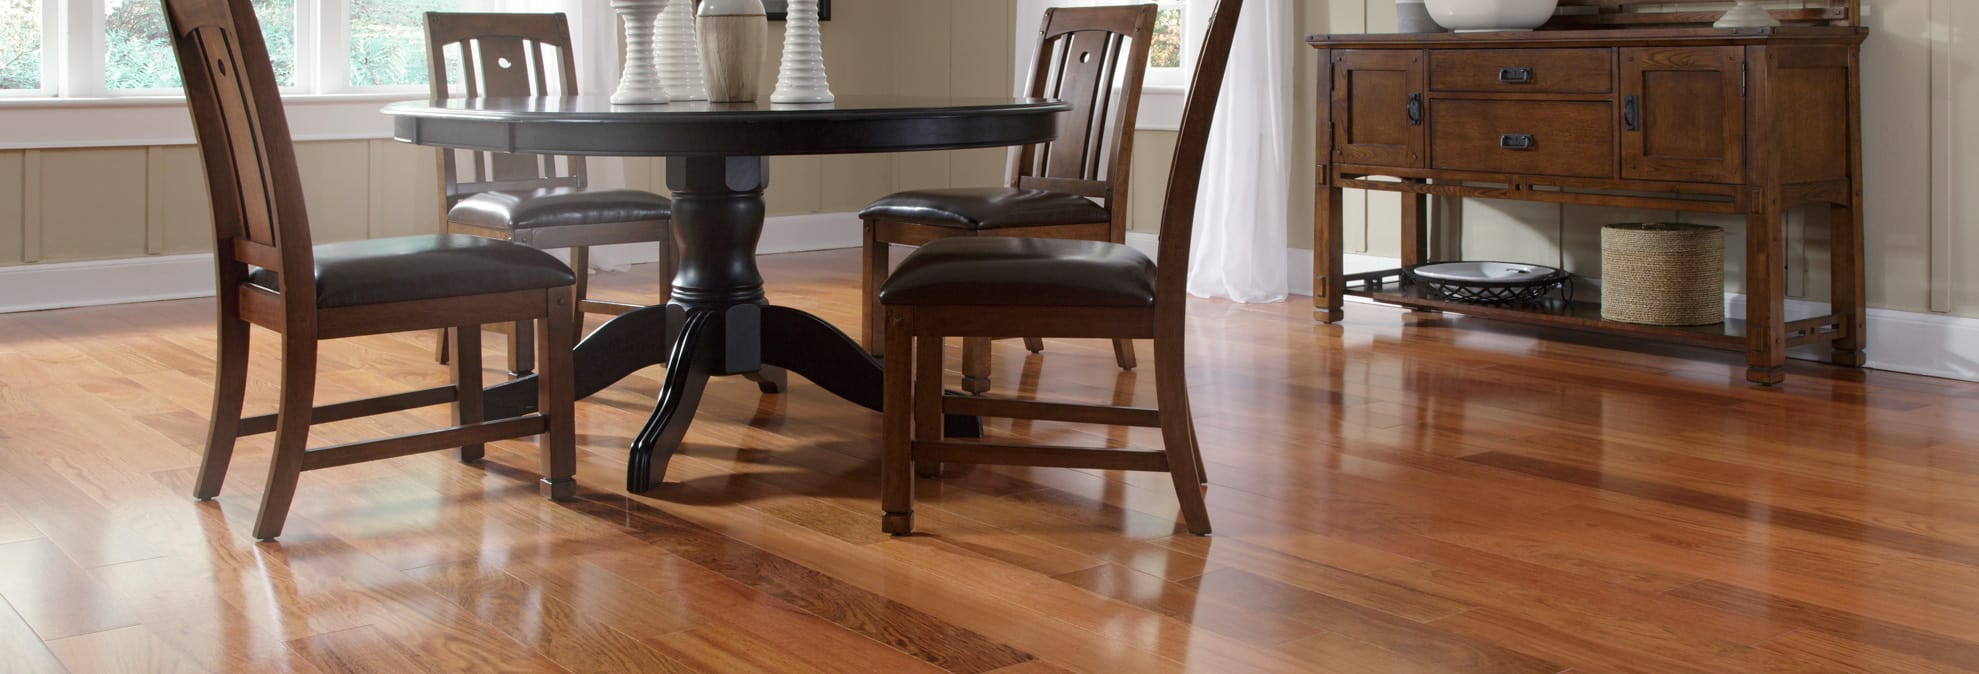 simple strategies to protect hardwood floors - Best Laminate Wood Floors